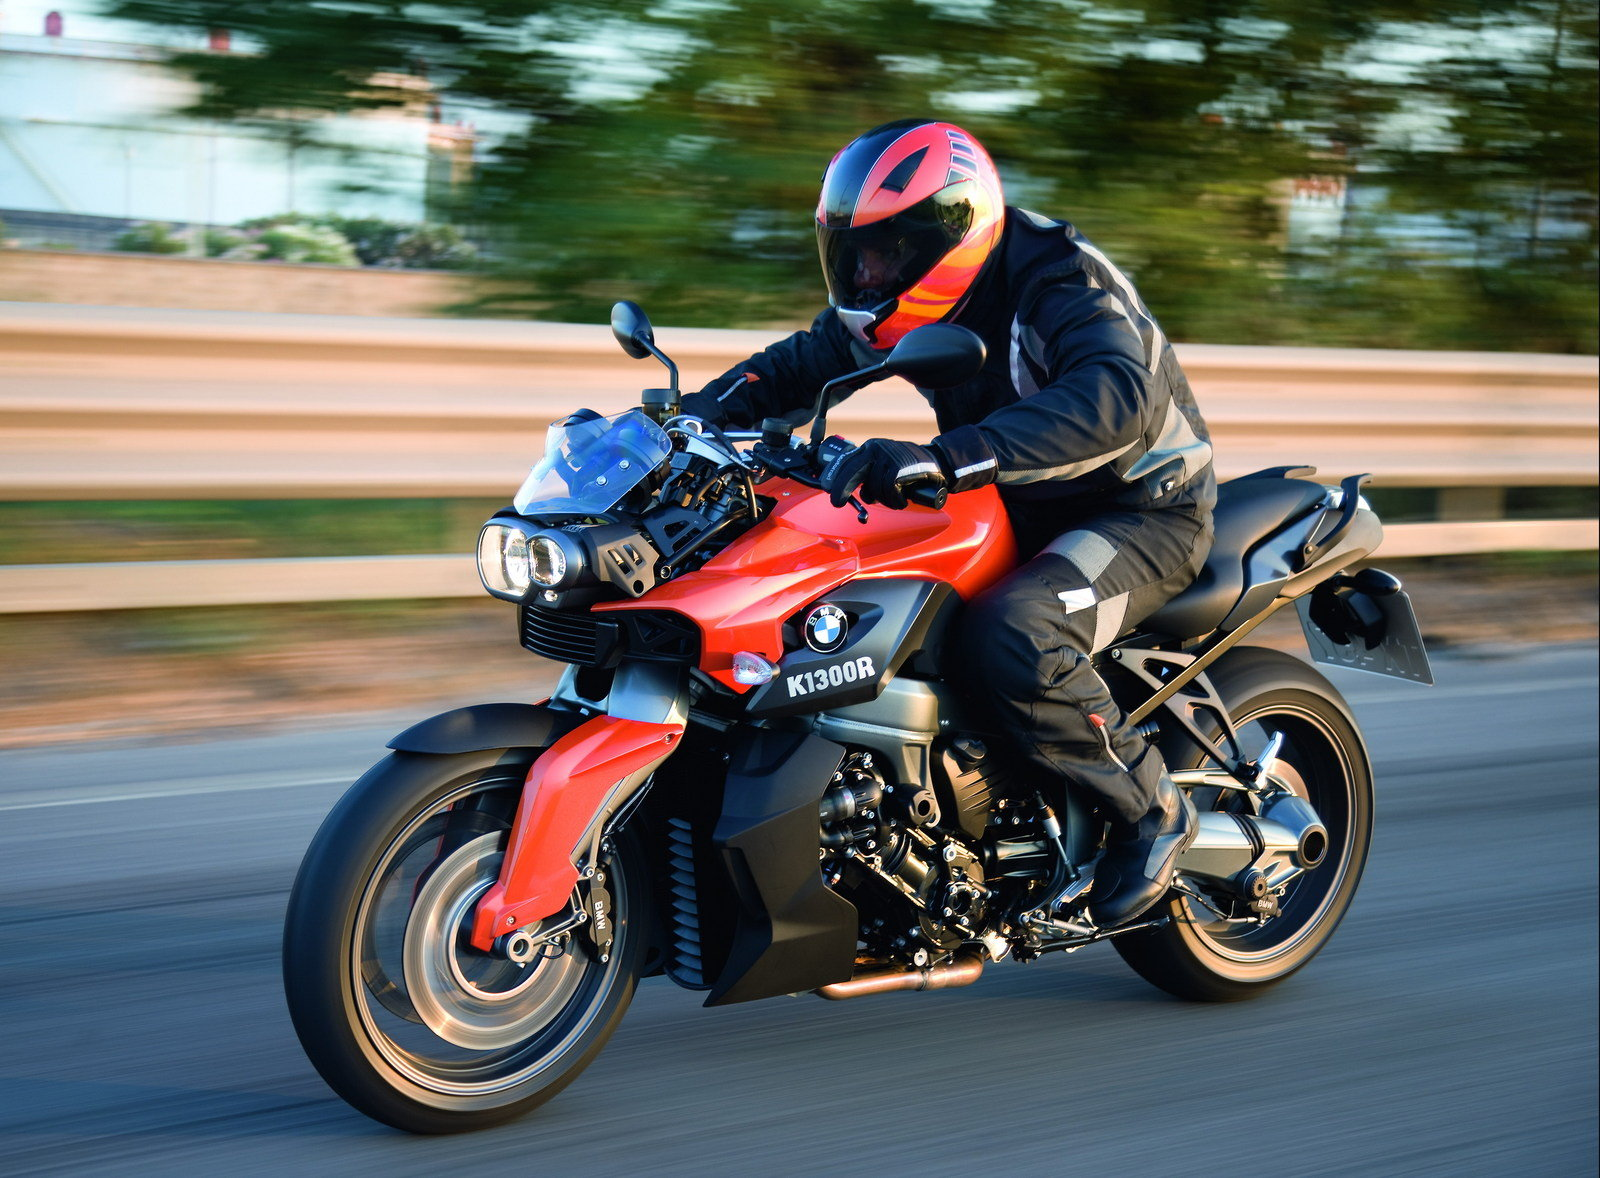 2009 bmw k 1300 r picture 302893 motorcycle review. Black Bedroom Furniture Sets. Home Design Ideas